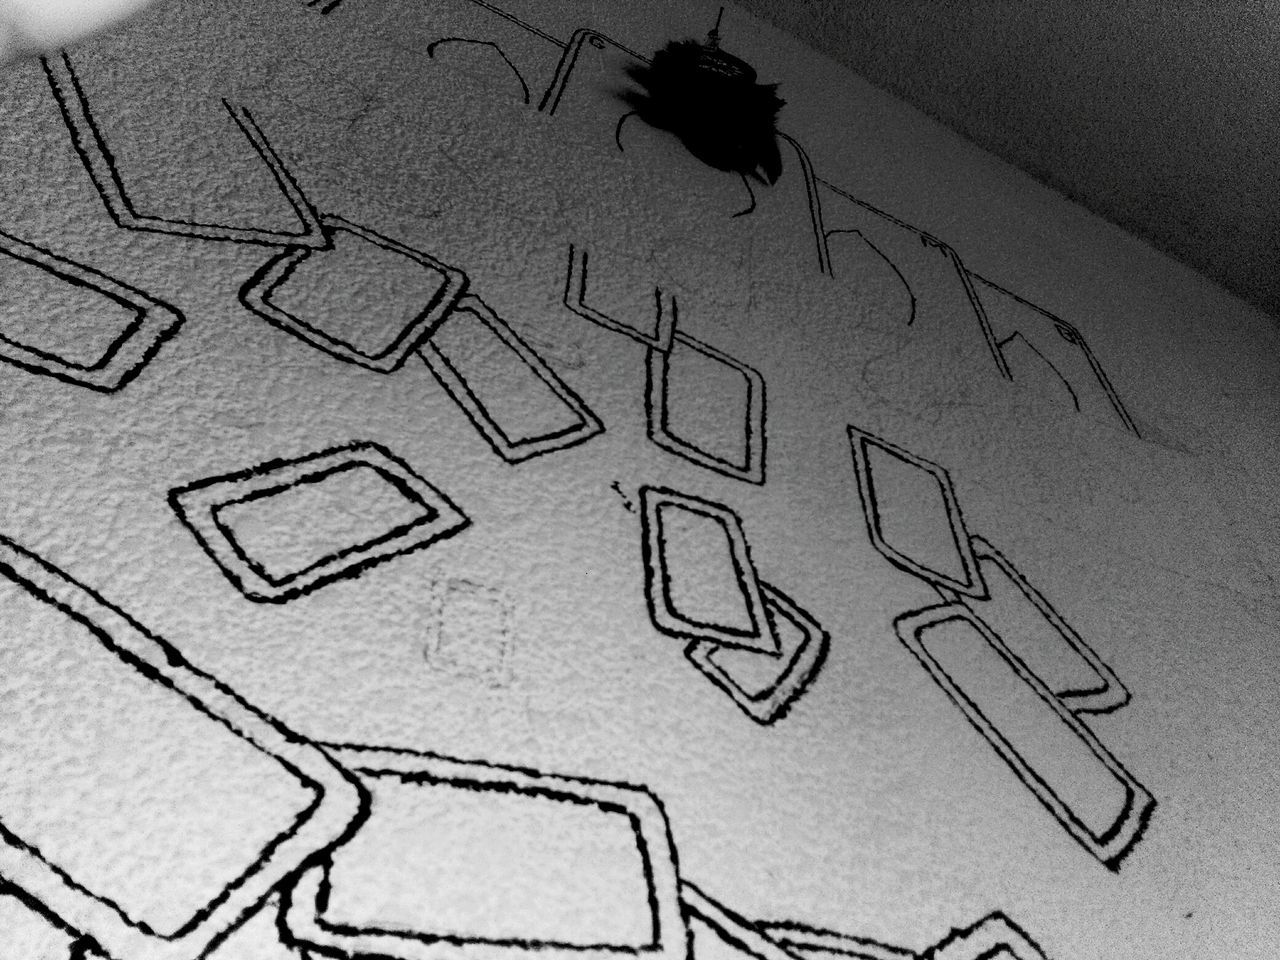 indoors, high angle view, sketch, paper, no people, animal themes, technology, close-up, day